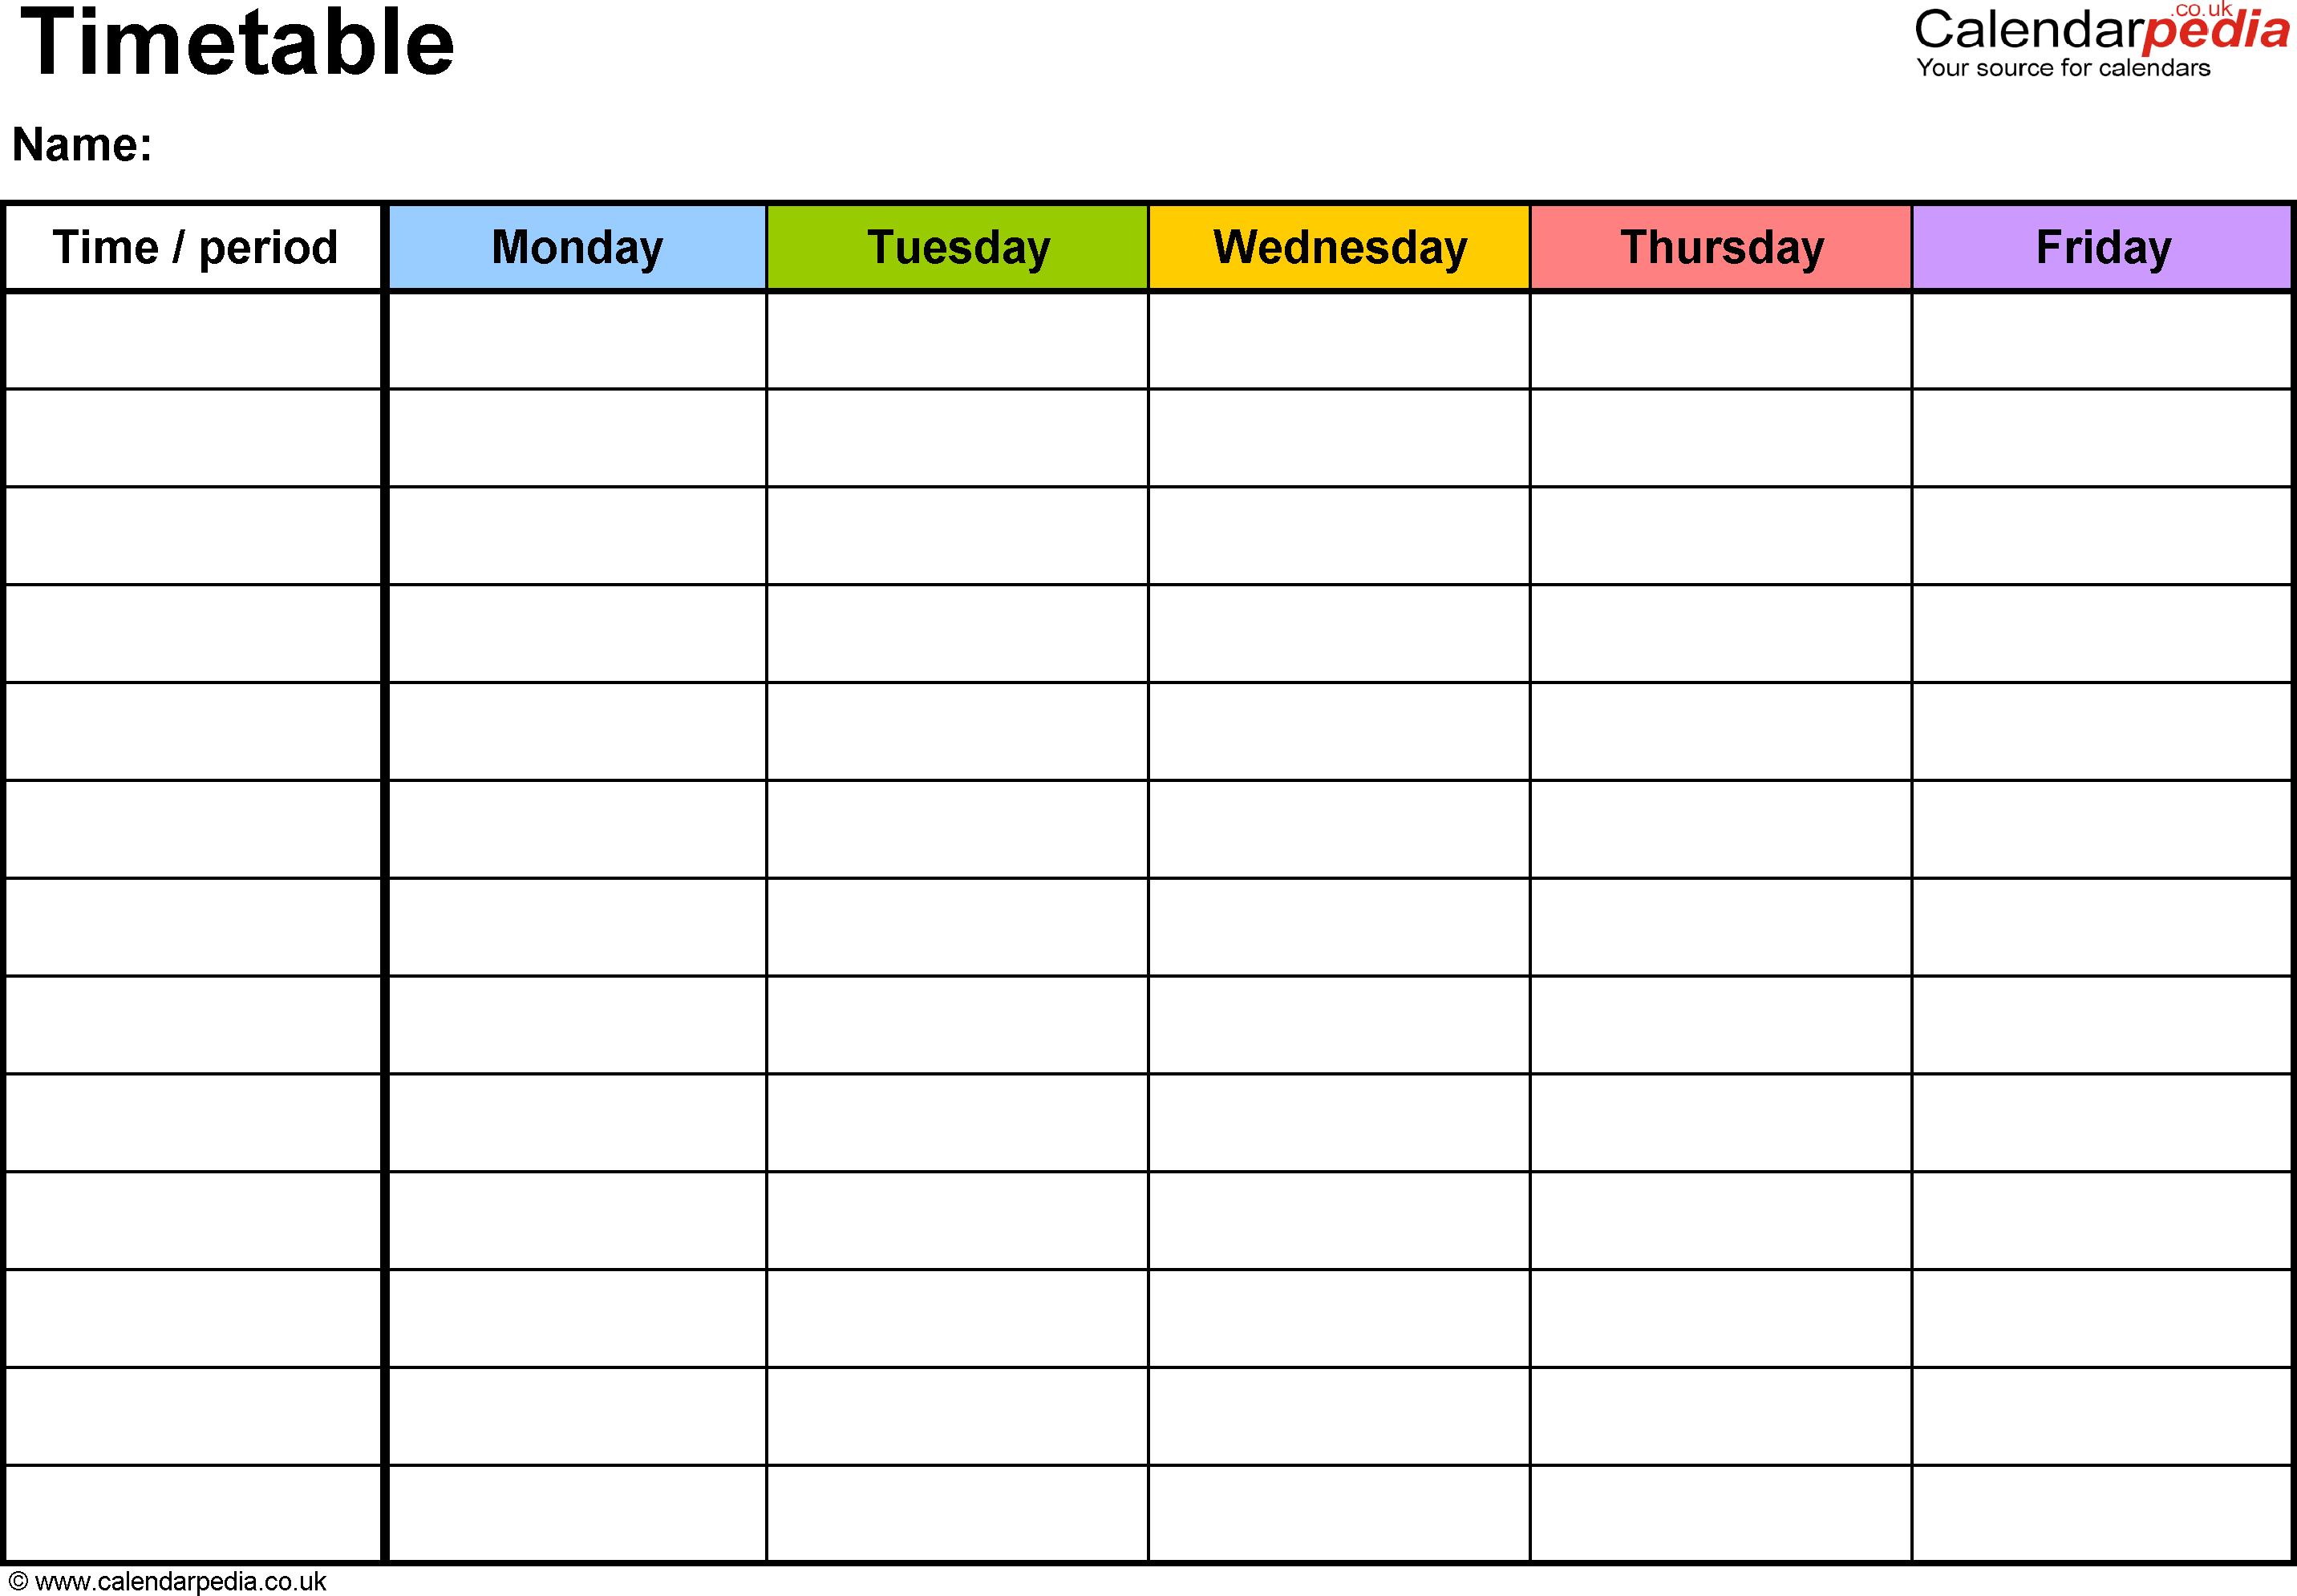 Pdf Timetable Template 2: Landscape Format, A4, 1 Page with 5 Day Weekly Planner Template